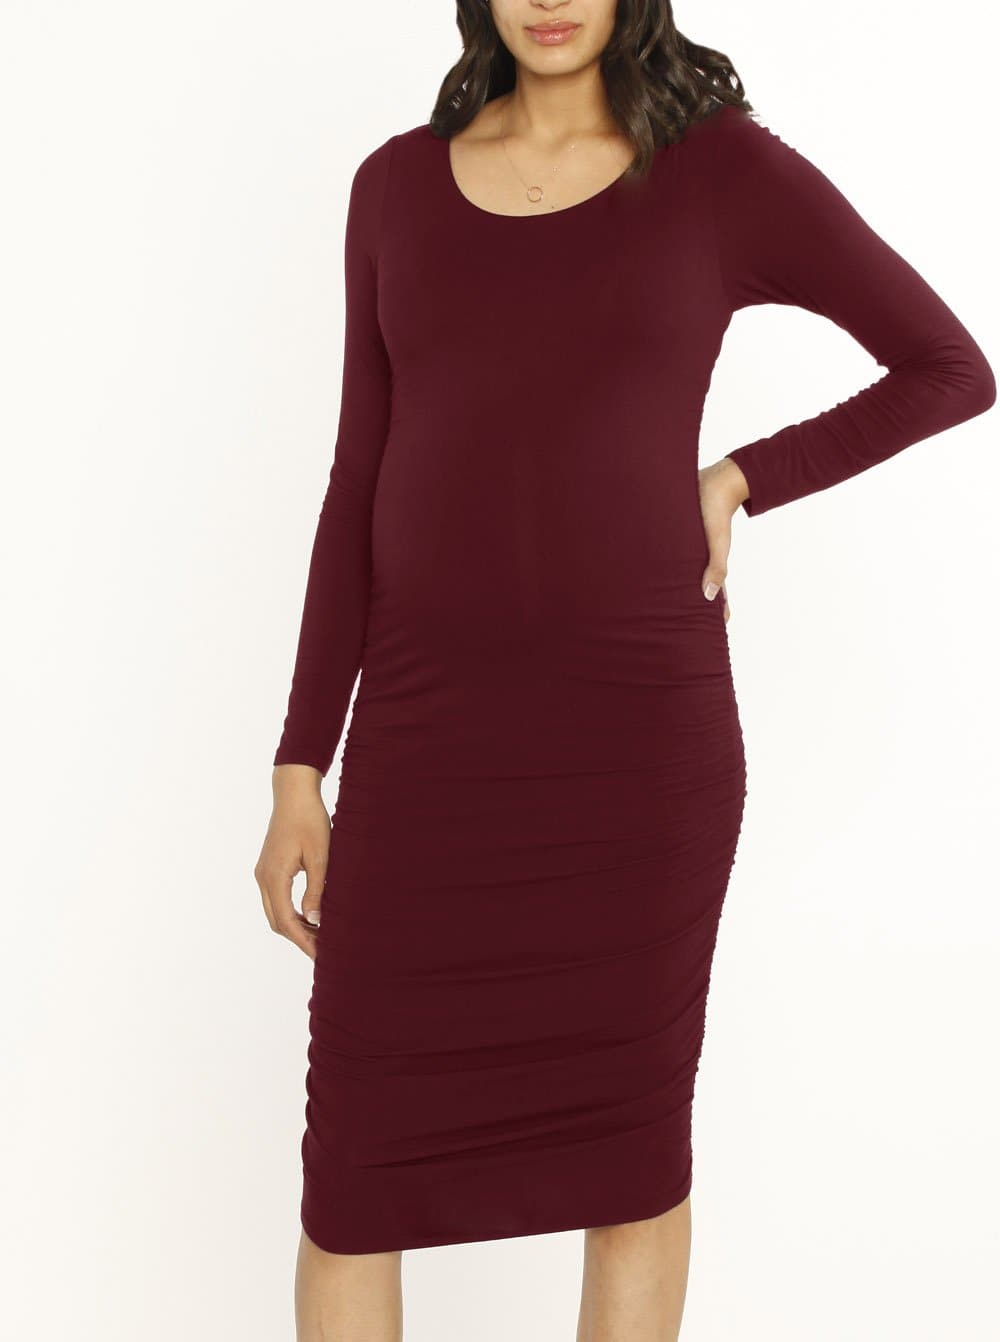 Body Hugging Long Sleeve Maternity Dress - Red